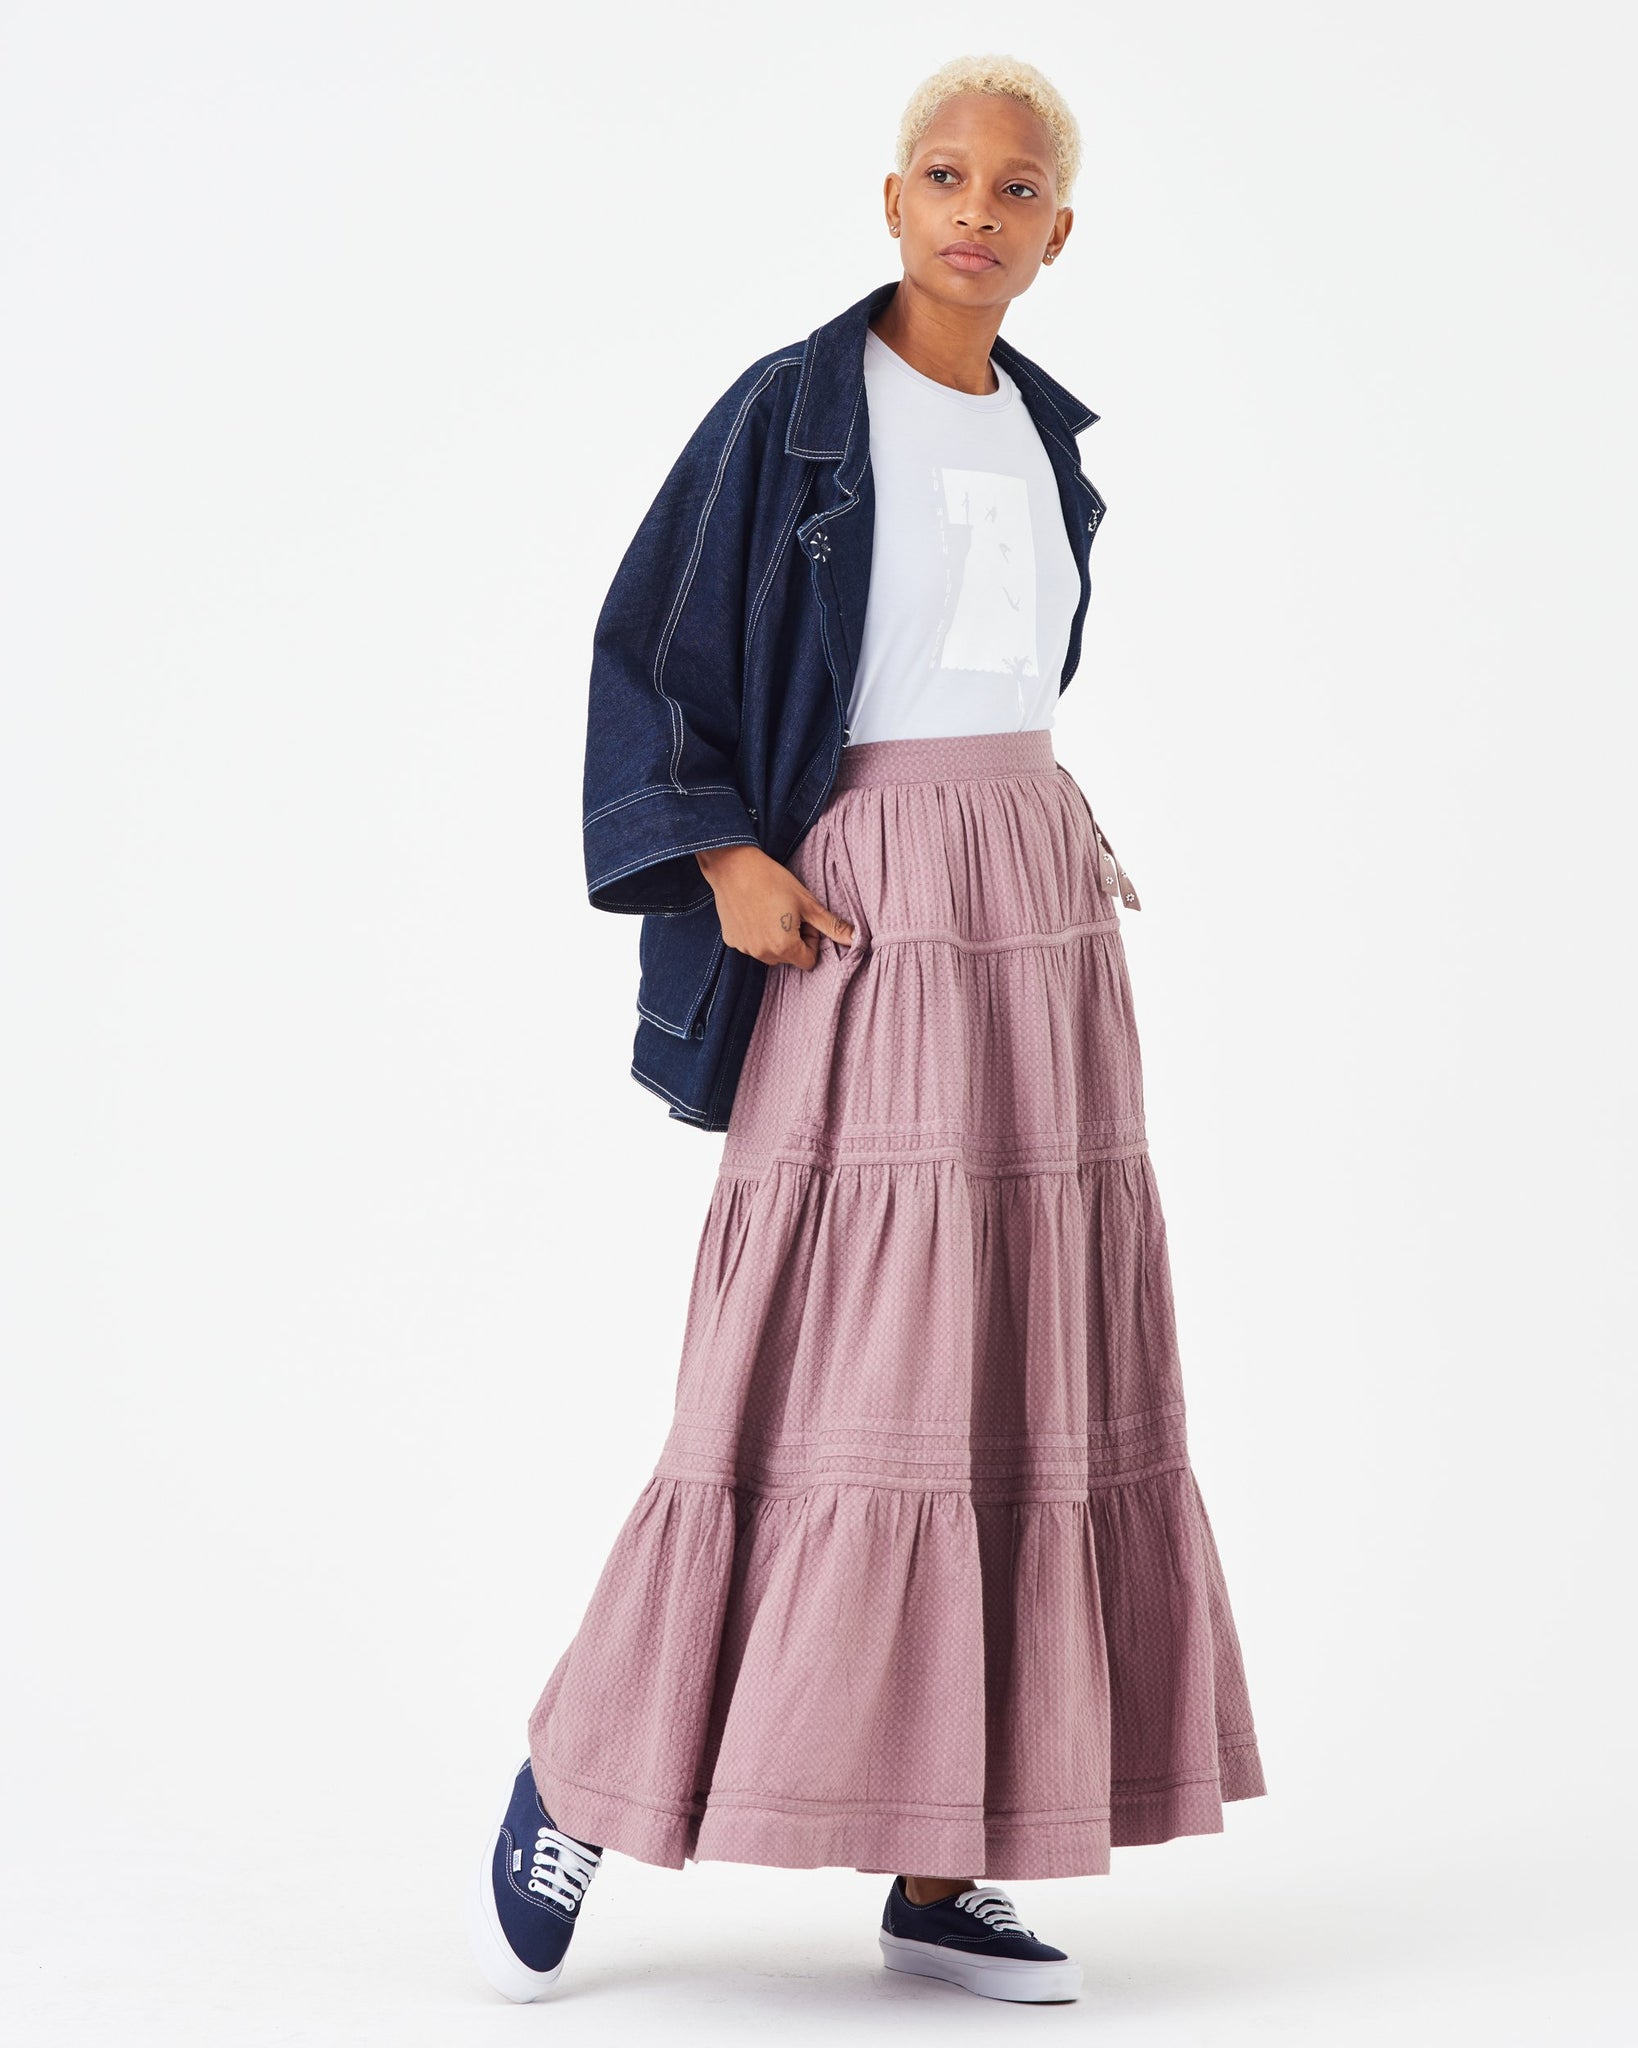 Sage Transitional Jacket + Harper Clarity Skirt